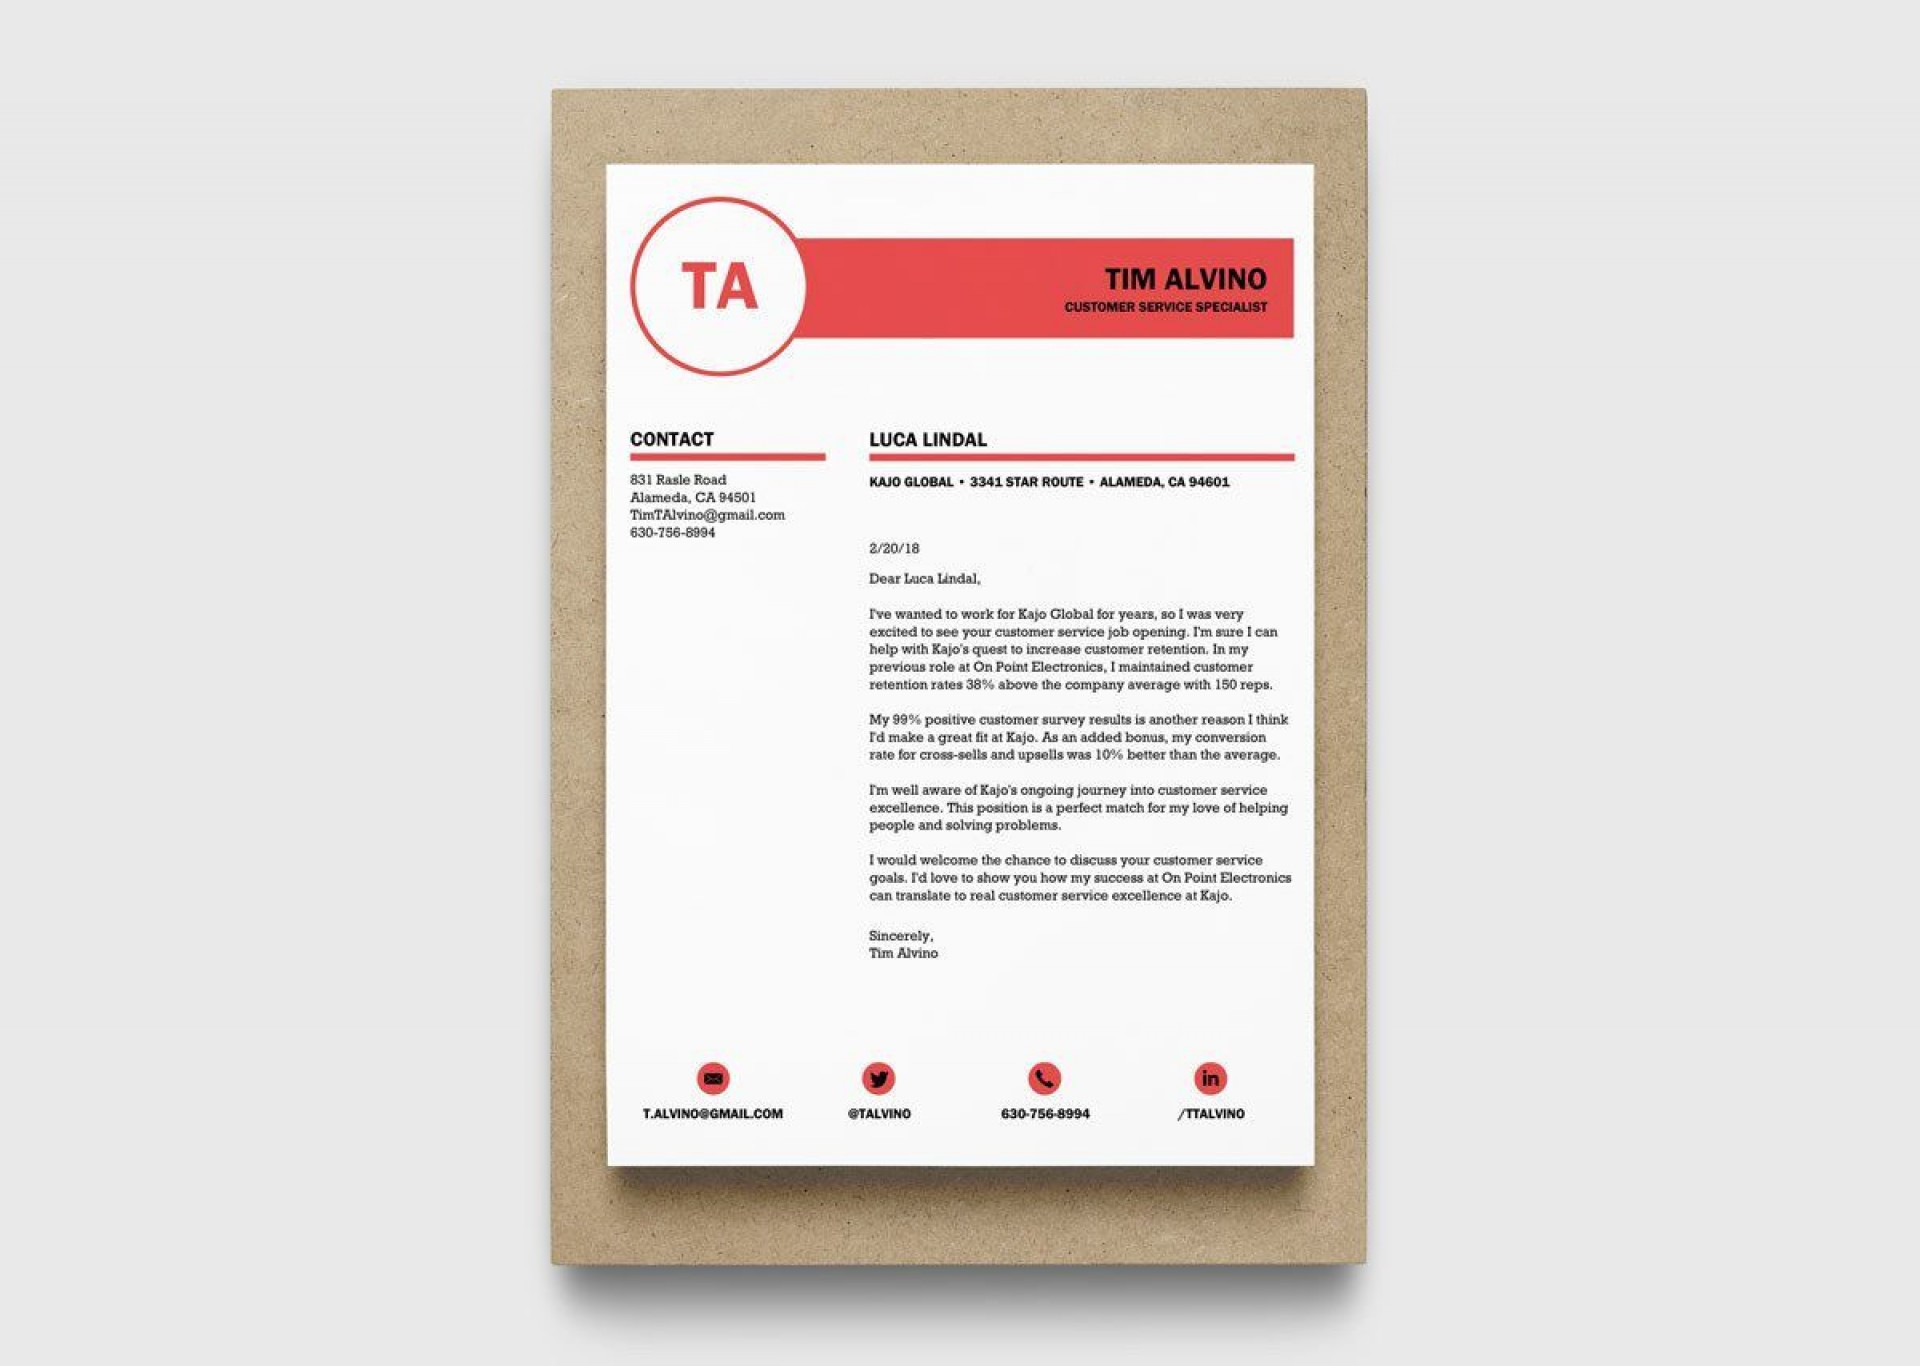 002 Awesome Resume Cover Letter Template Docx High Resolution 1920